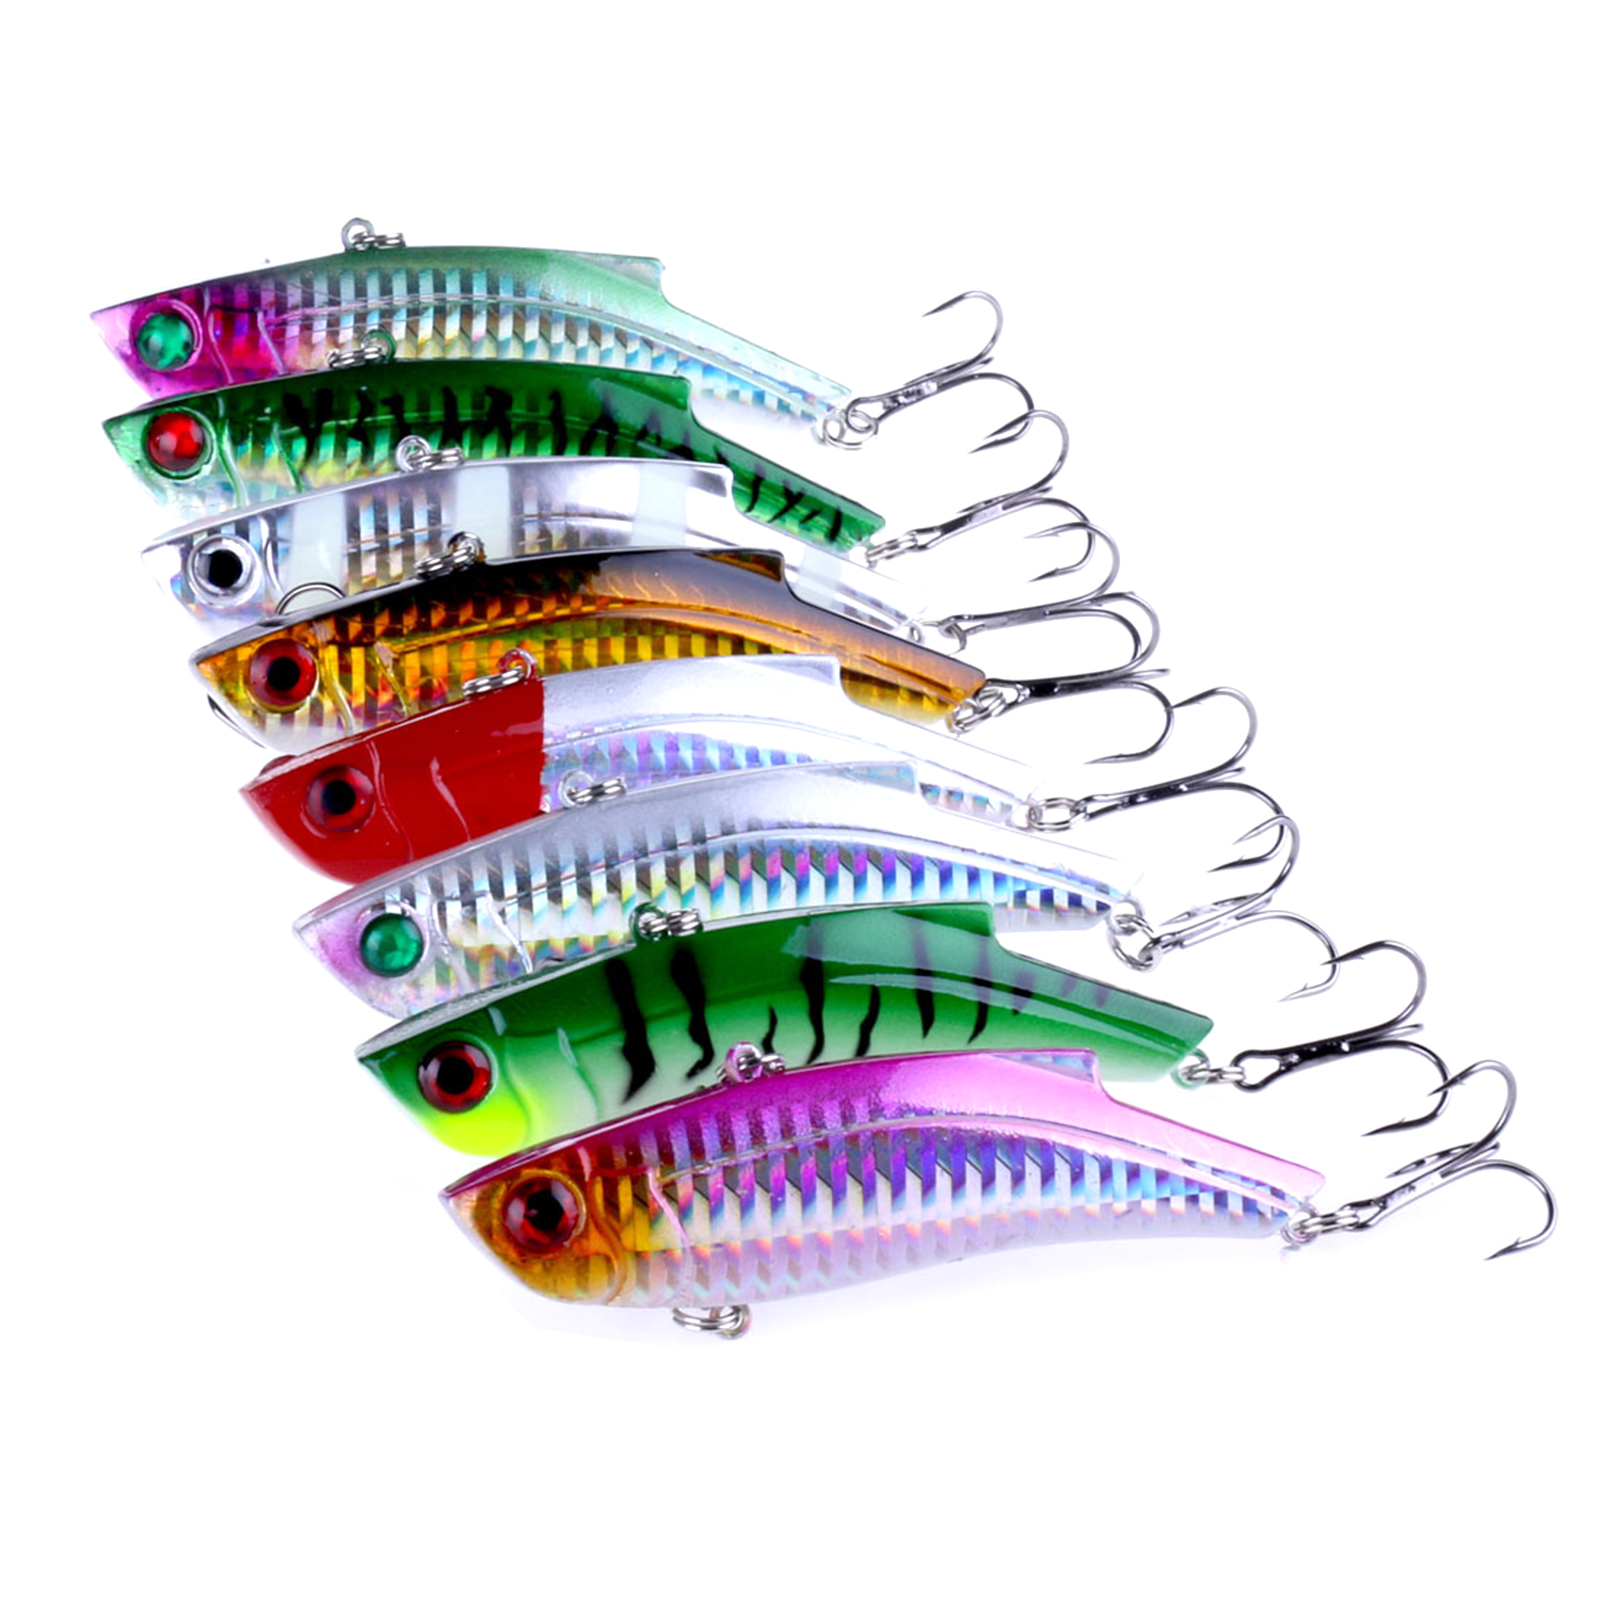 VIB Fishing Lures Sets 28g 90mm Crankbait Fishing Tackle Deep Swim Bionic Artificial Vib Lure Hard Bait 8pcs/set